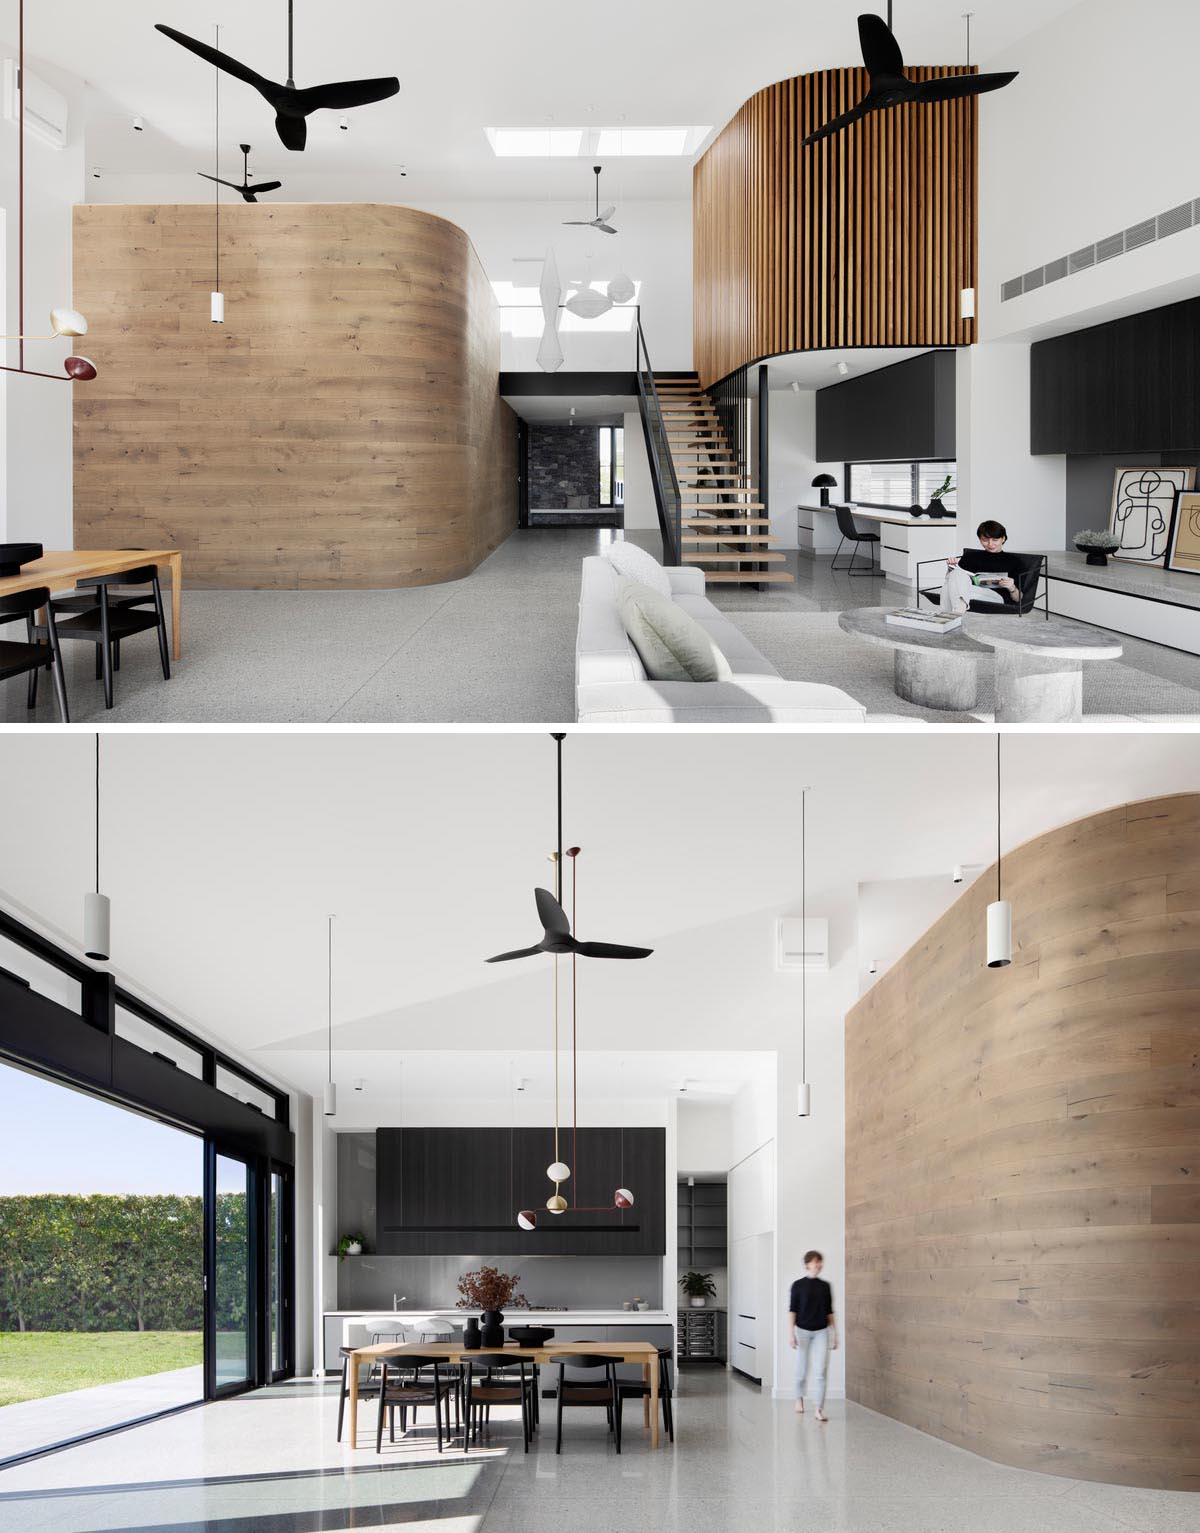 A modern interior with a curved timber wall and a second wood wall clad in timer battens.